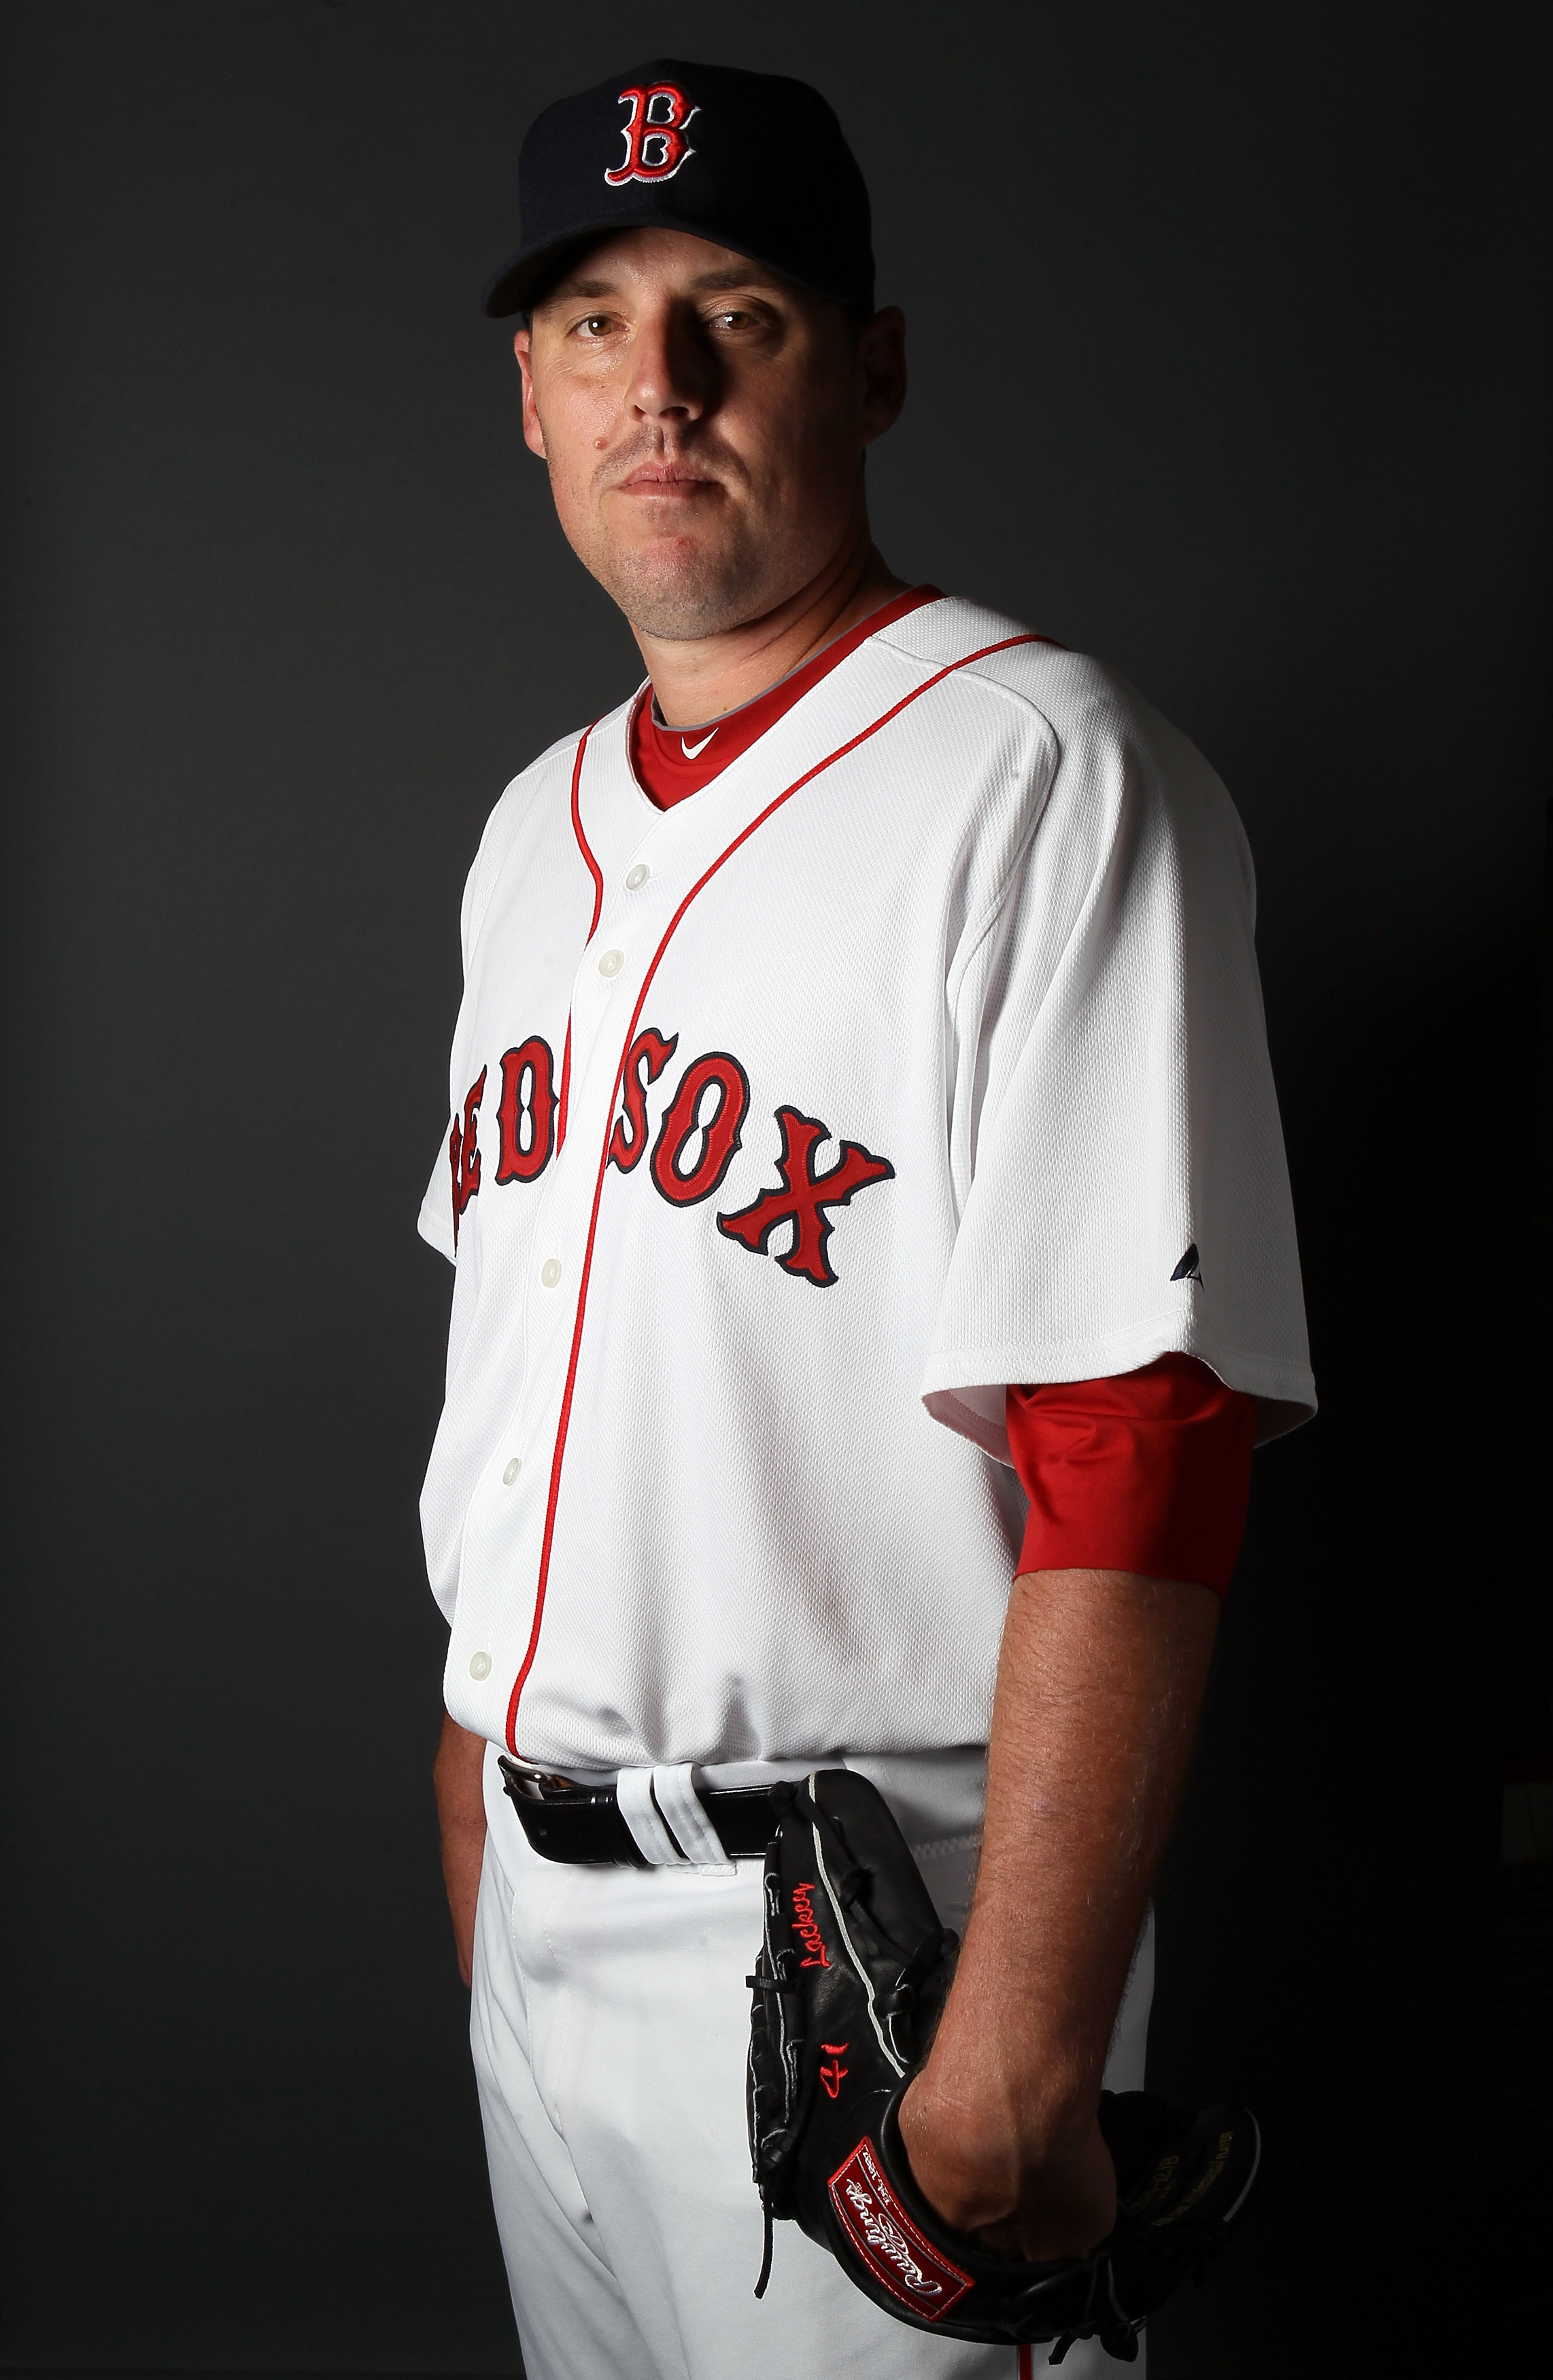 FT. MYERS, FL - FEBRUARY 20:  John Lackey #41 of the Boston Red Sox poses for a portrait during the Boston Red Sox Photo Day on February 20, 2011 at the Boston Red Sox Player Development Complex in Ft. Myers, Florida  (Photo by Elsa/Getty Images)